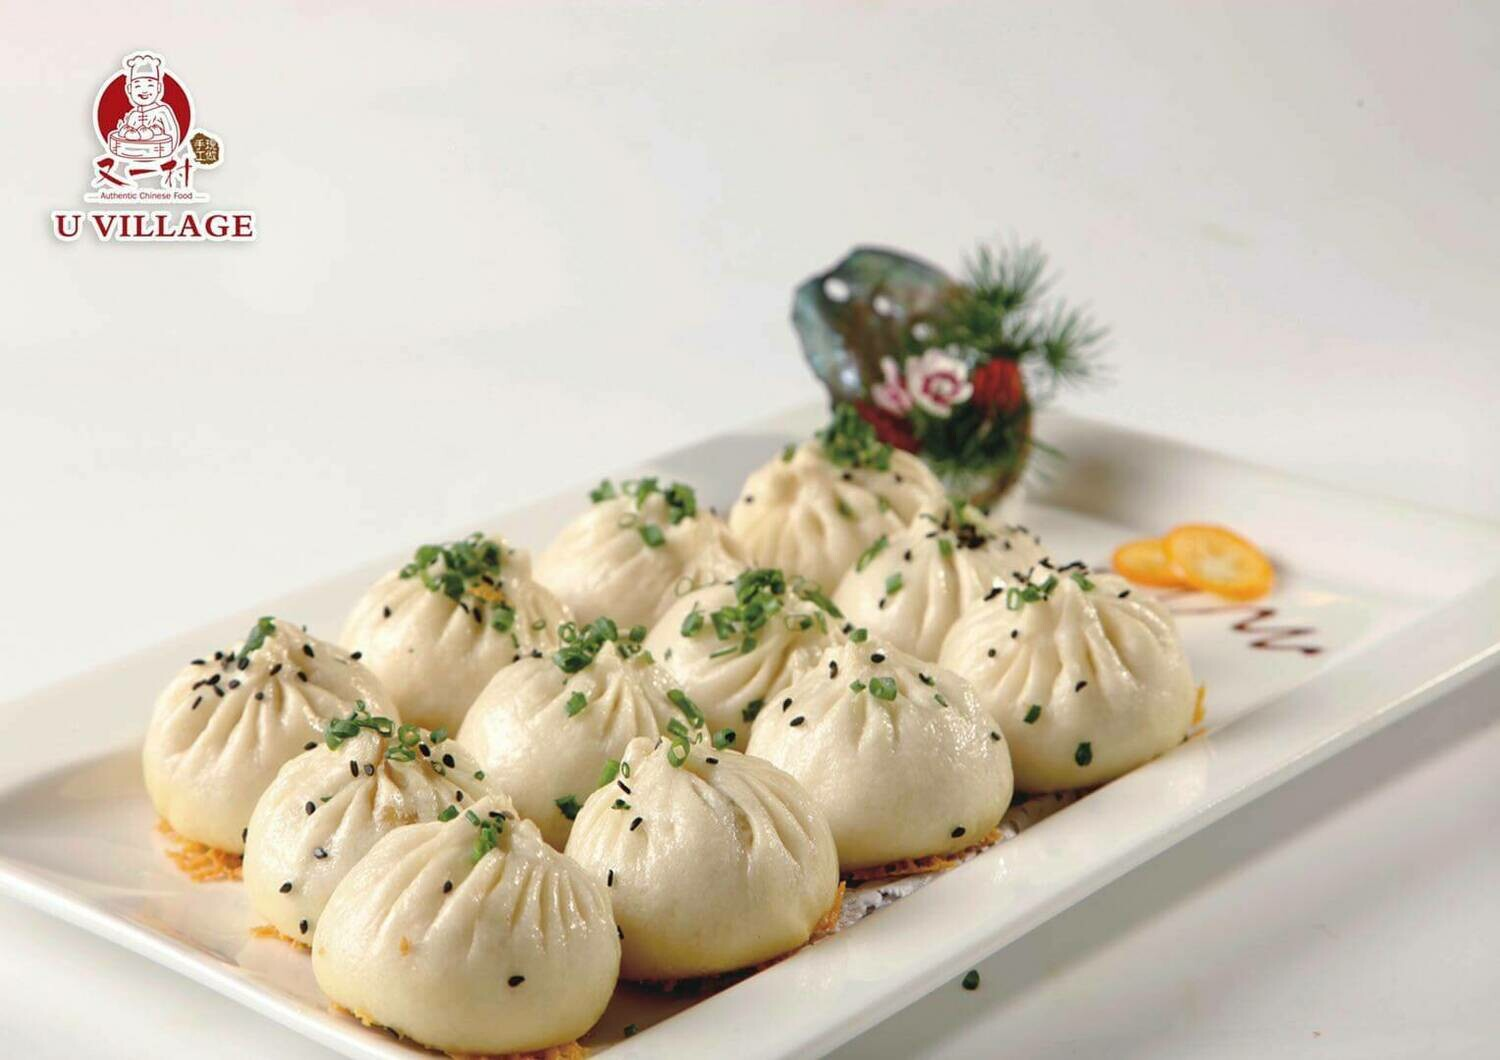 【又一村】Pan-Fried Buns(Pork & cabbage)生煎包(包菜猪肉,微辣) (Closed Monday& Tuesday)